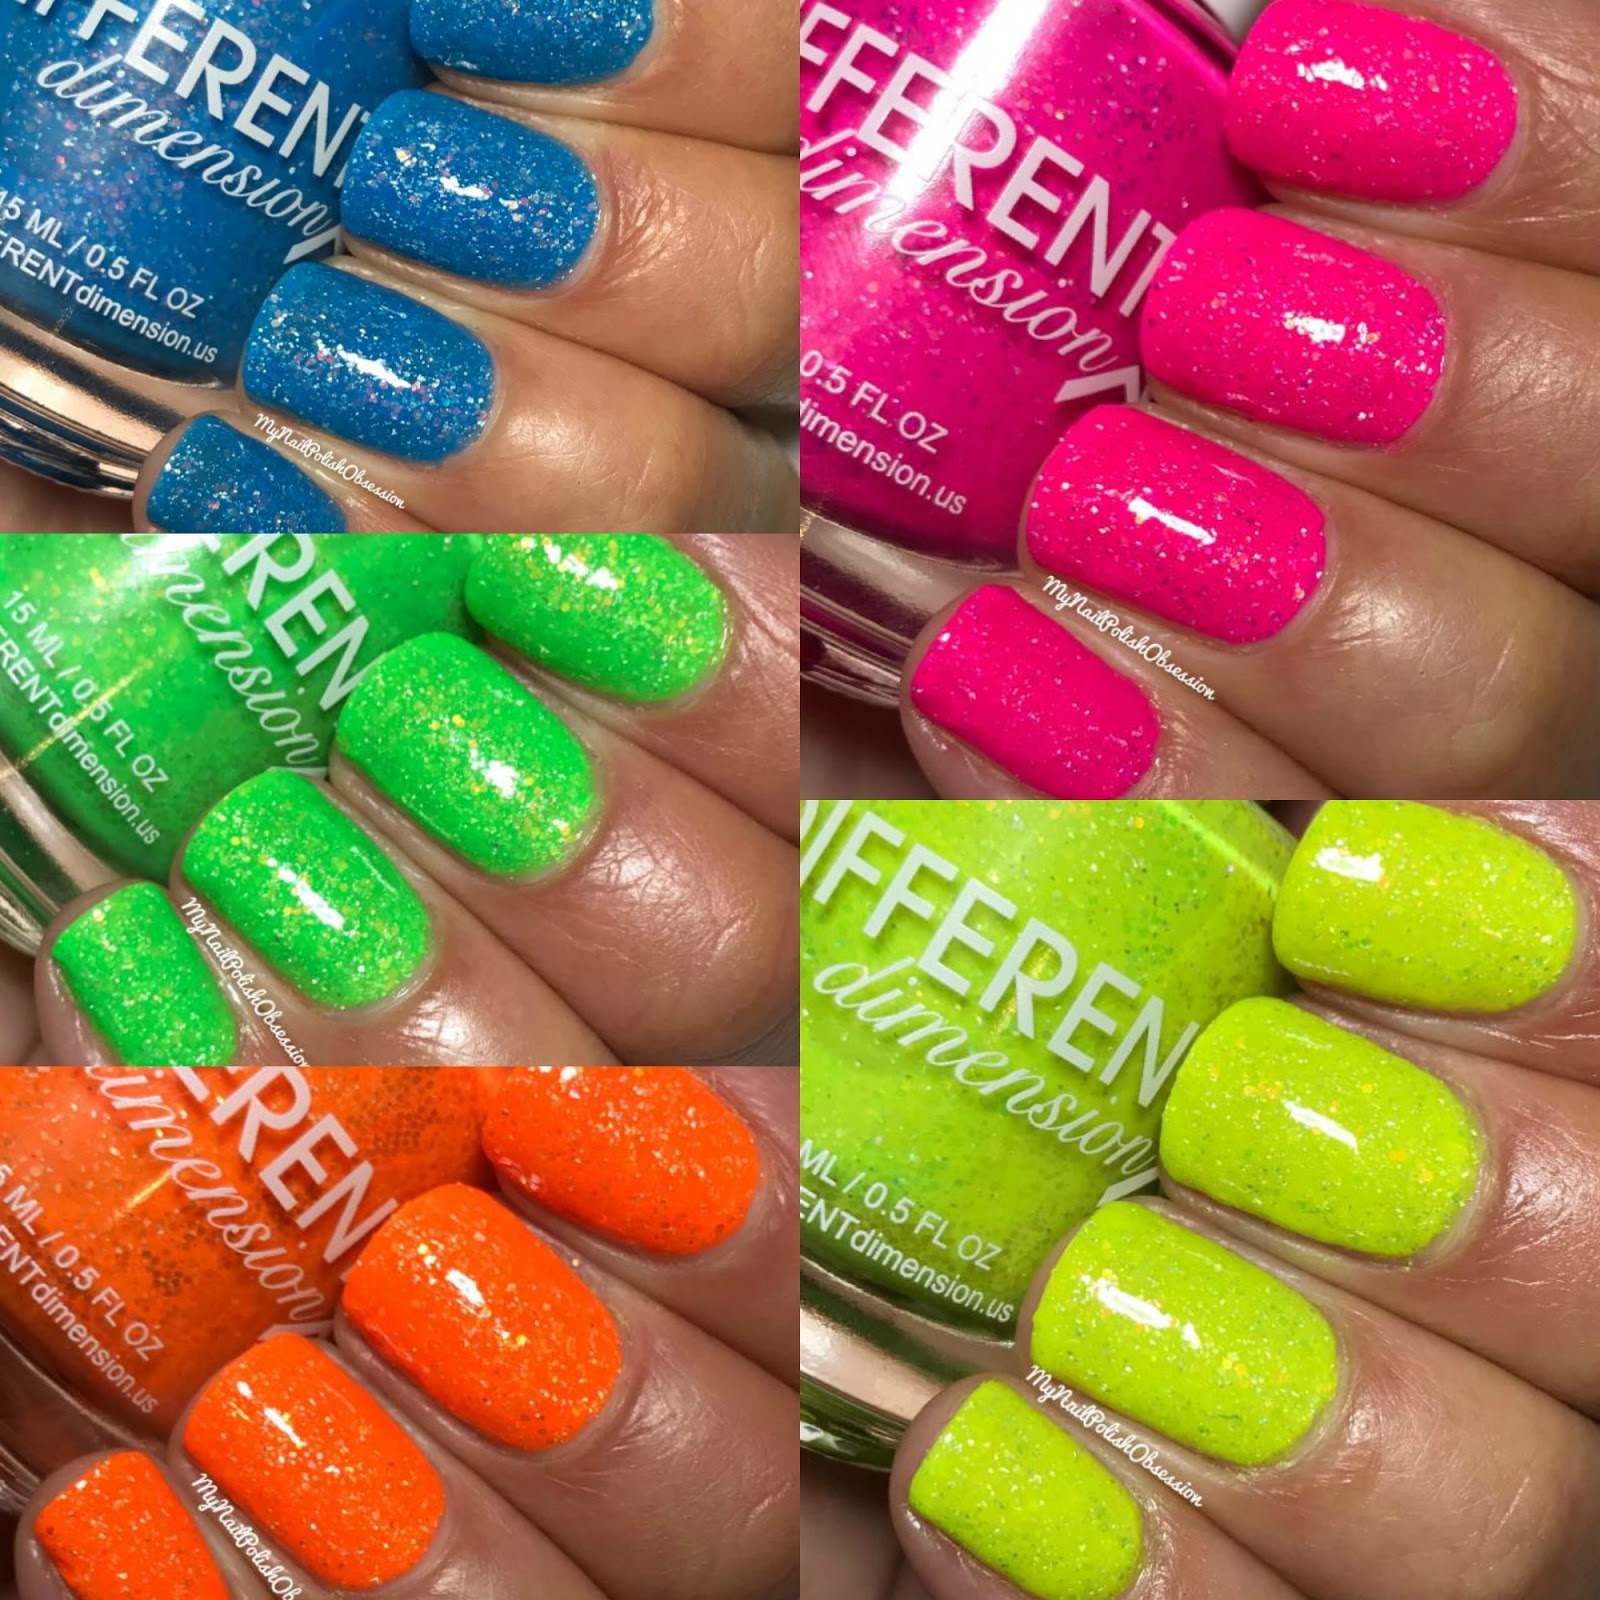 Look - 4 Summer Bright Nail Polishes We Love video